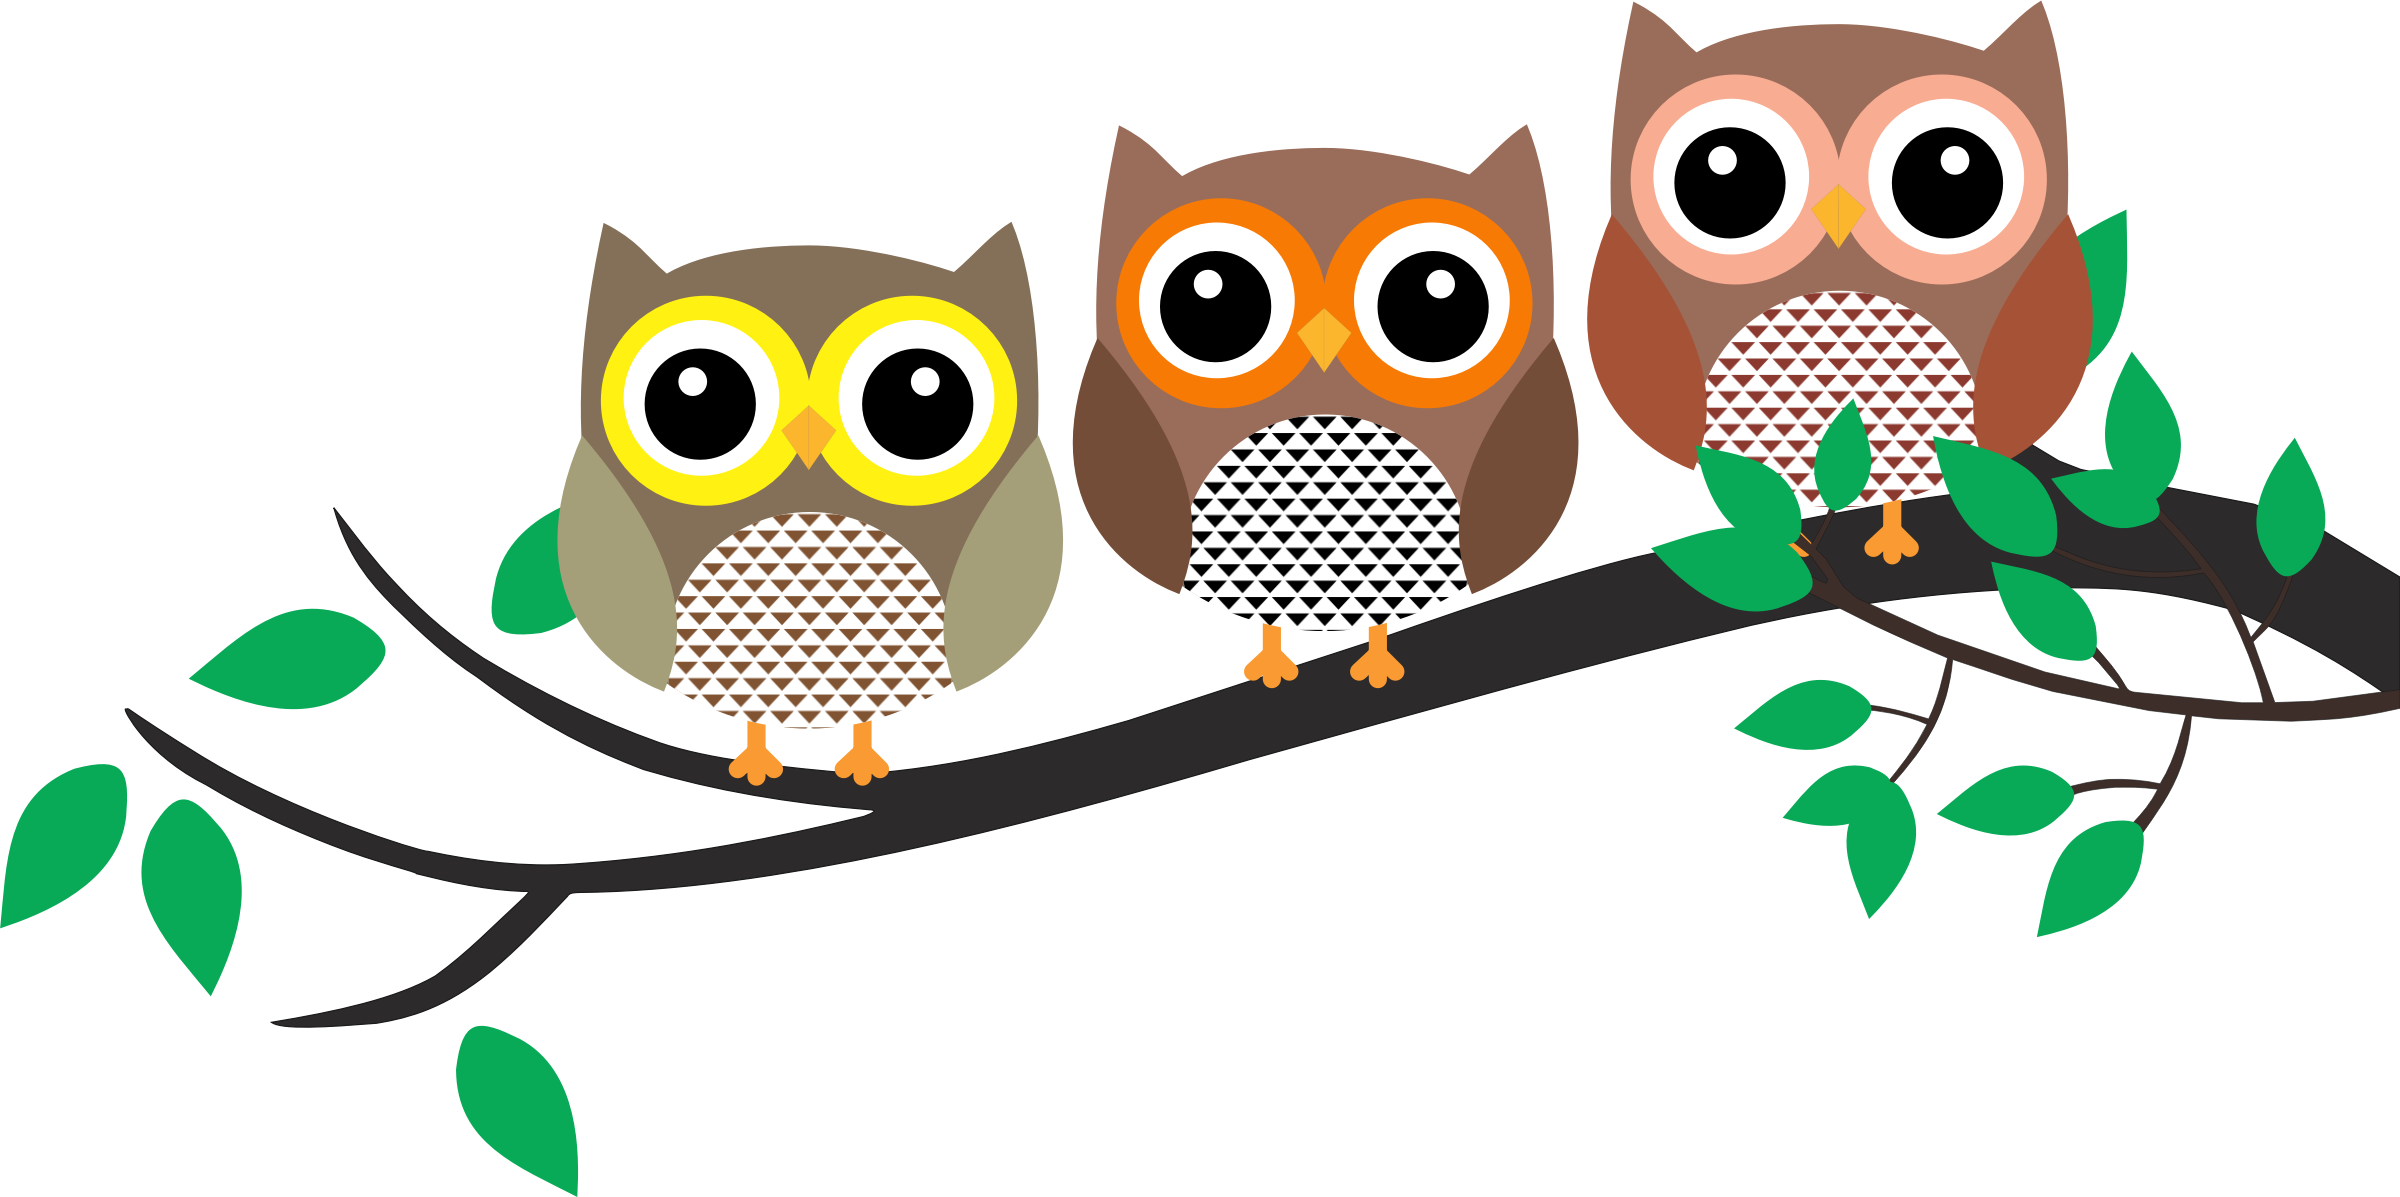 Decoration Wall Stickers Owls In A Tree Png Transparent Owls In A Tree Png Images